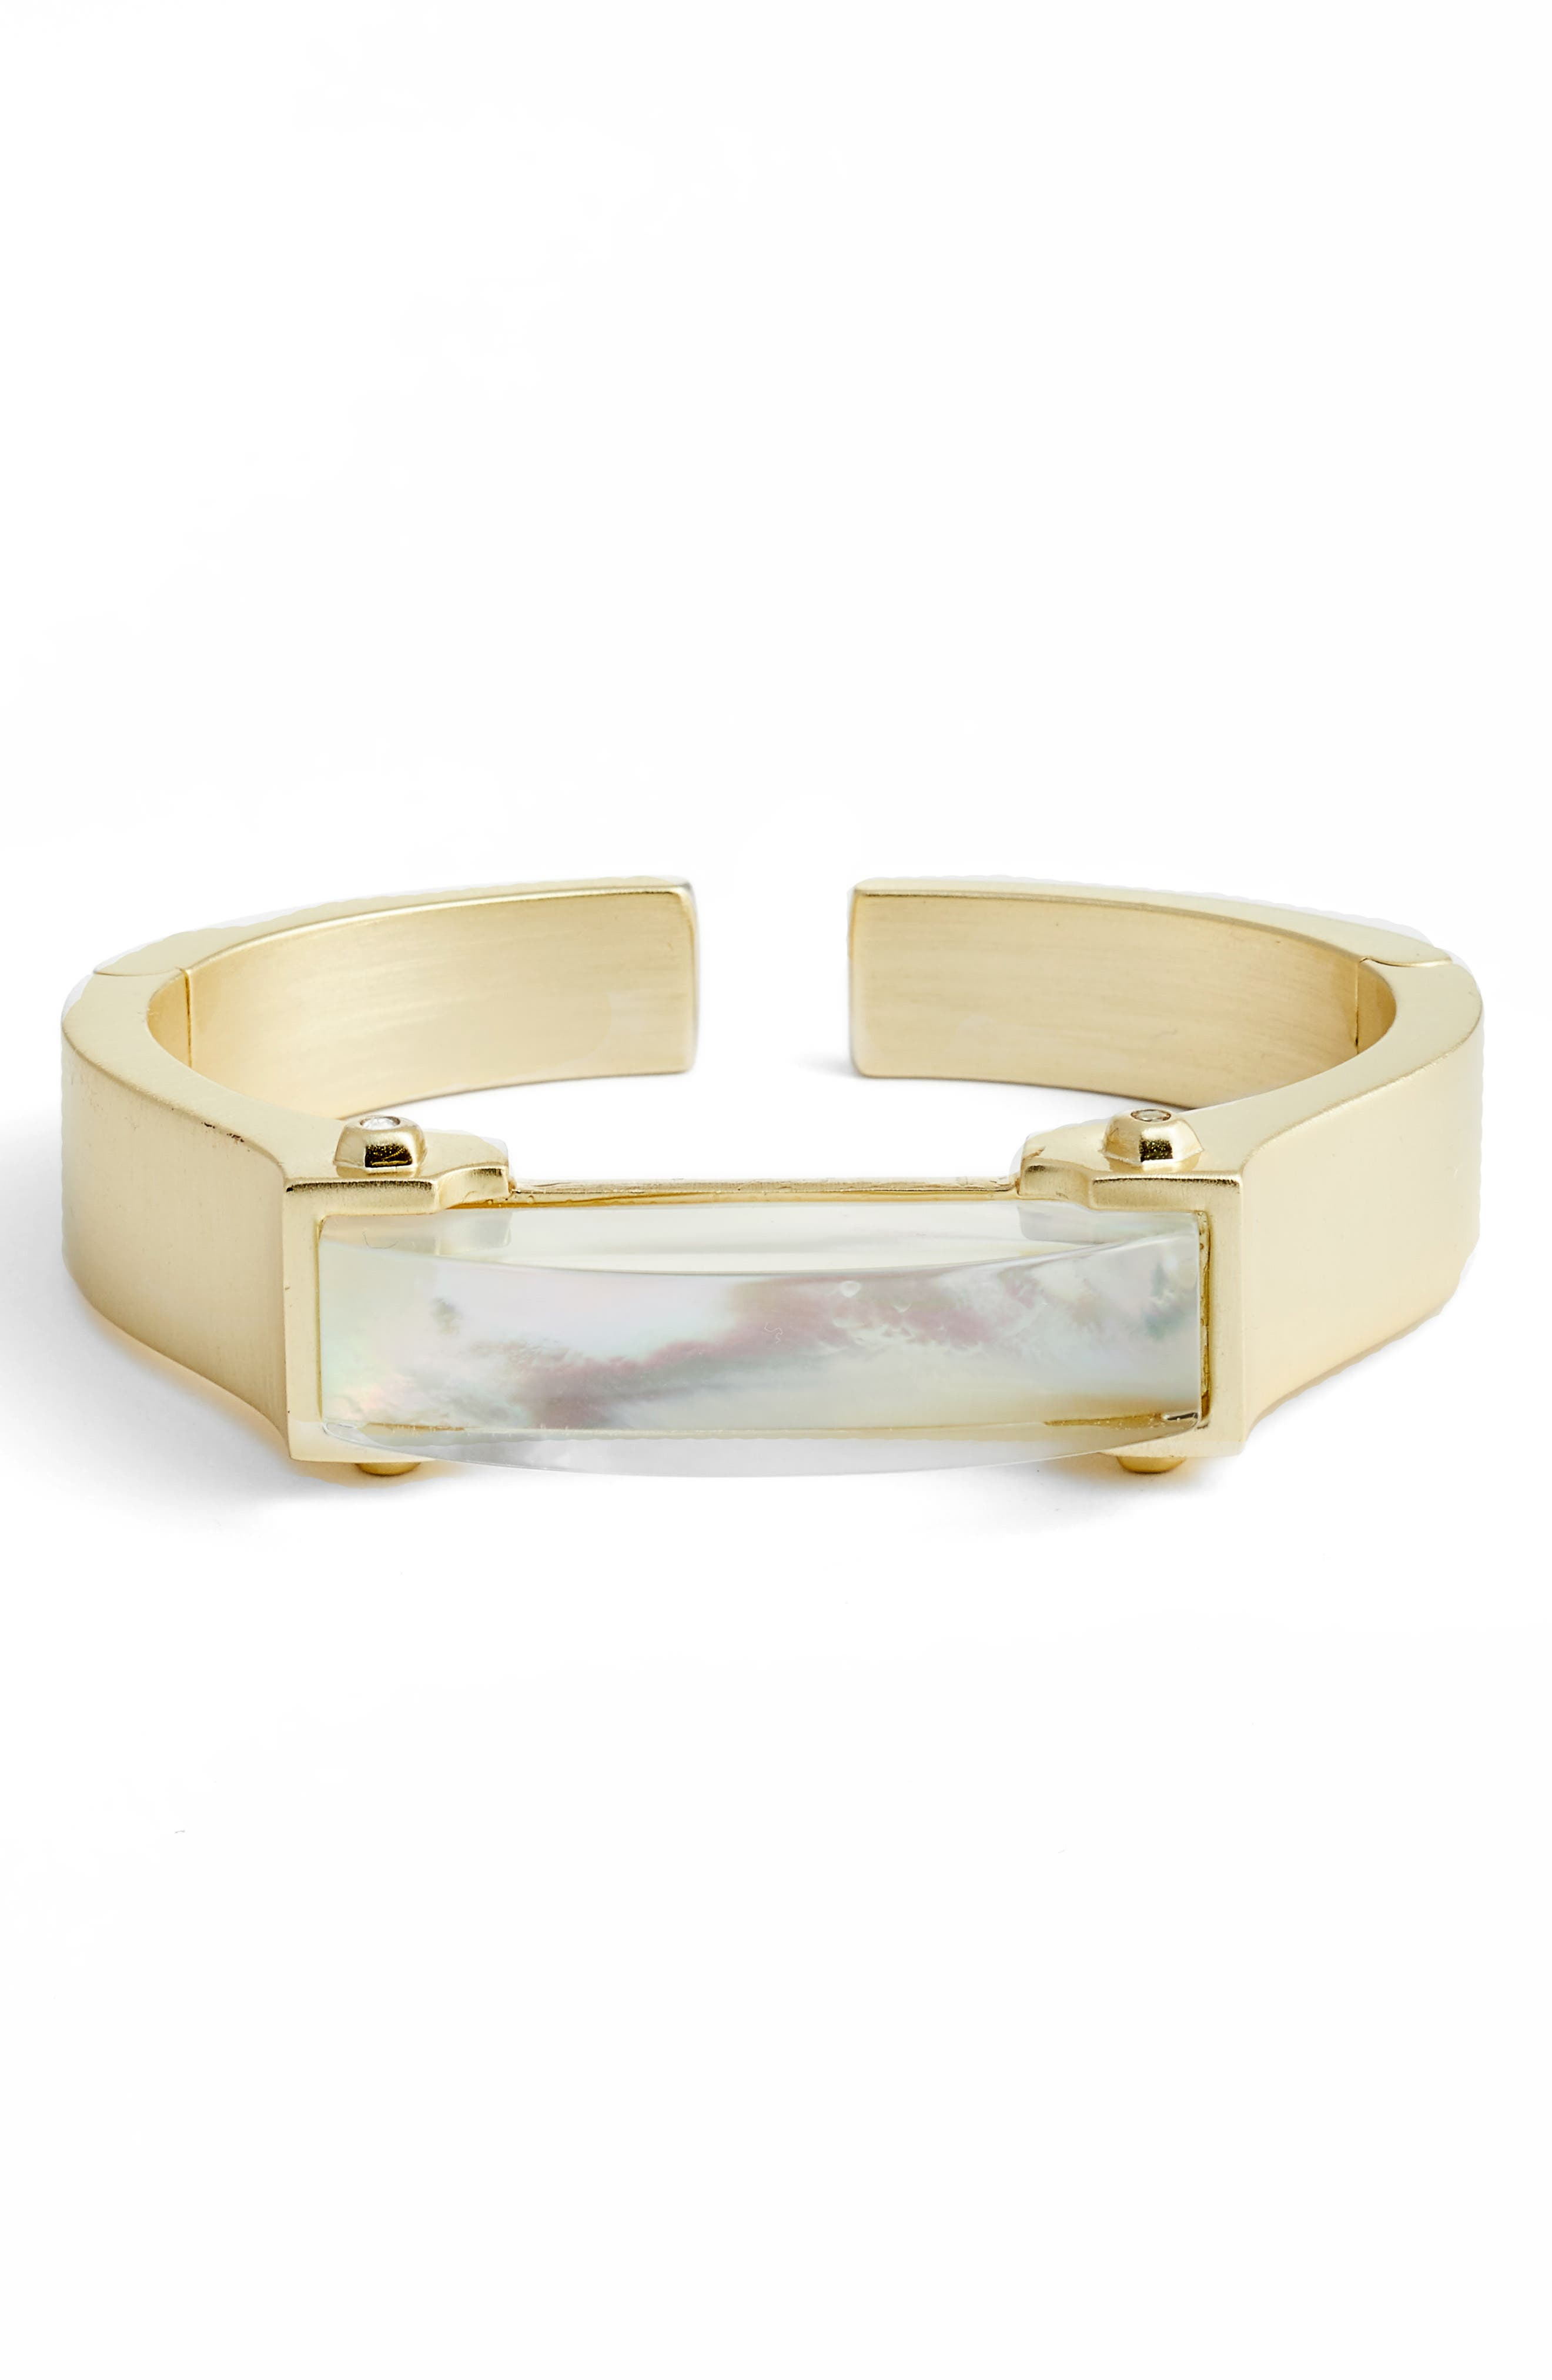 Kailey Cuff Bracelet,                         Main,                         color, 100